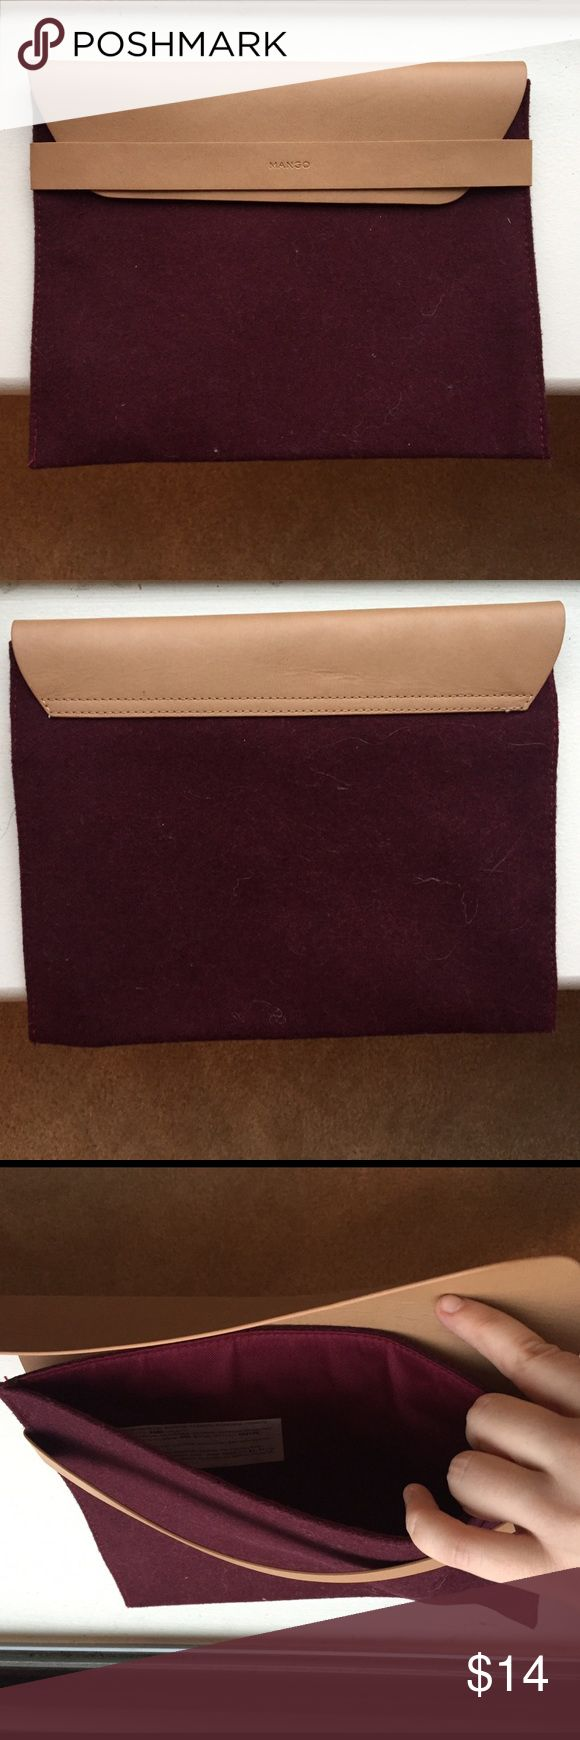 MANGO Clutch in Burgundy Wool and Leather Burgundy wool MANGO clutch I picked up in France last year. Real leather folded top and 11x7.5 in size. Smoke-free home; no rips tears or stains. Mango Bags Clutches & Wristlets